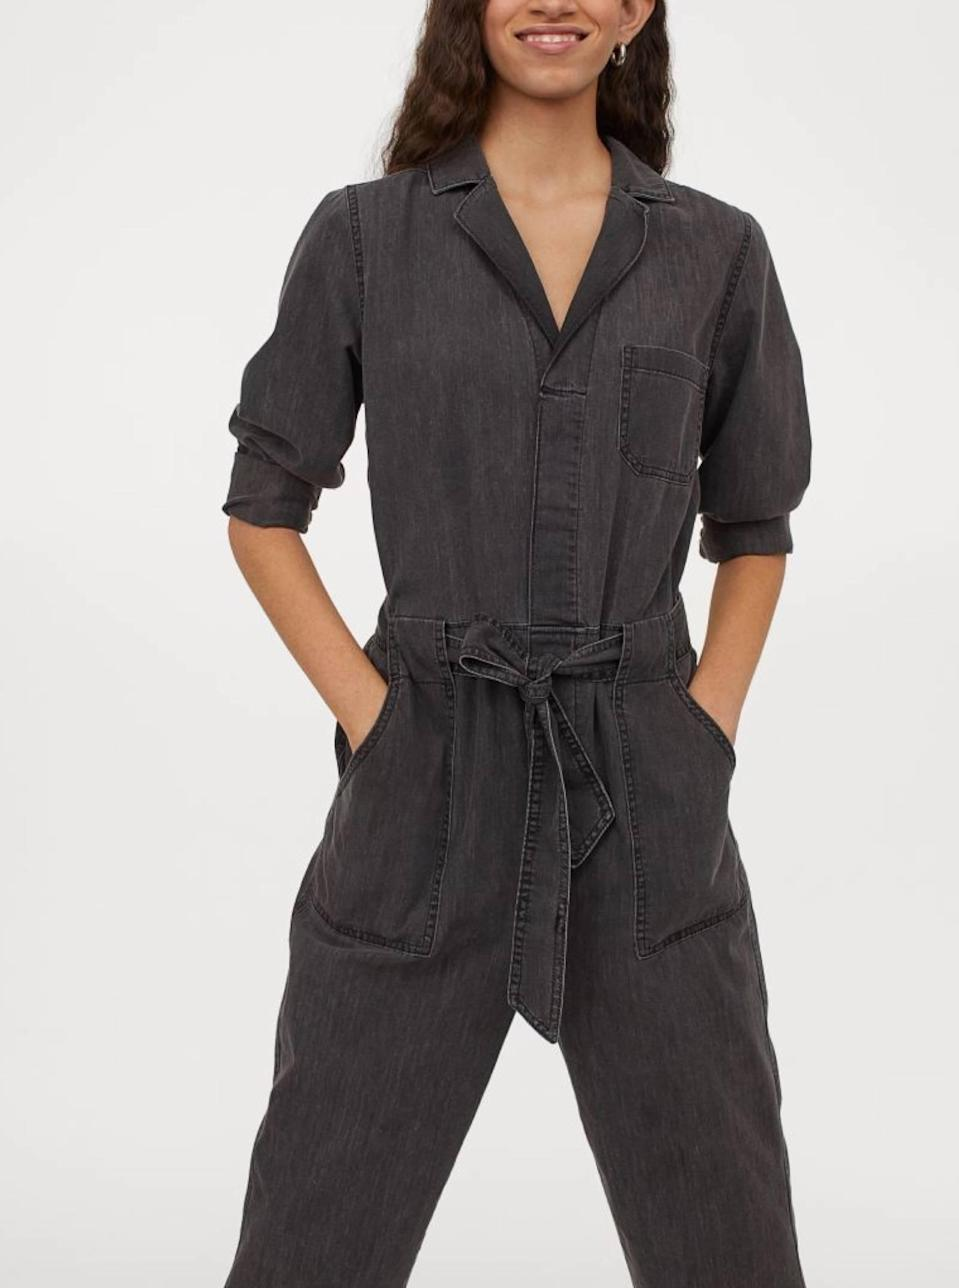 "If you're not ready to fully invest in the trend, snap up a less-than-$40 option from H&M. Dress up this relaxed, everyday jumpsuit with some <a href=""https://www.glamour.com/gallery/mismatched-earring-trend?mbid=synd_yahoo_rss"" rel=""nofollow noopener"" target=""_blank"" data-ylk=""slk:mismatched jewelry"" class=""link rapid-noclick-resp"">mismatched jewelry</a> for an outfit that's way more expensive than it looks. $39, H&M. <a href=""https://www2.hm.com/en_us/productpage.0925973001.html"" rel=""nofollow noopener"" target=""_blank"" data-ylk=""slk:Get it now!"" class=""link rapid-noclick-resp"">Get it now!</a>"